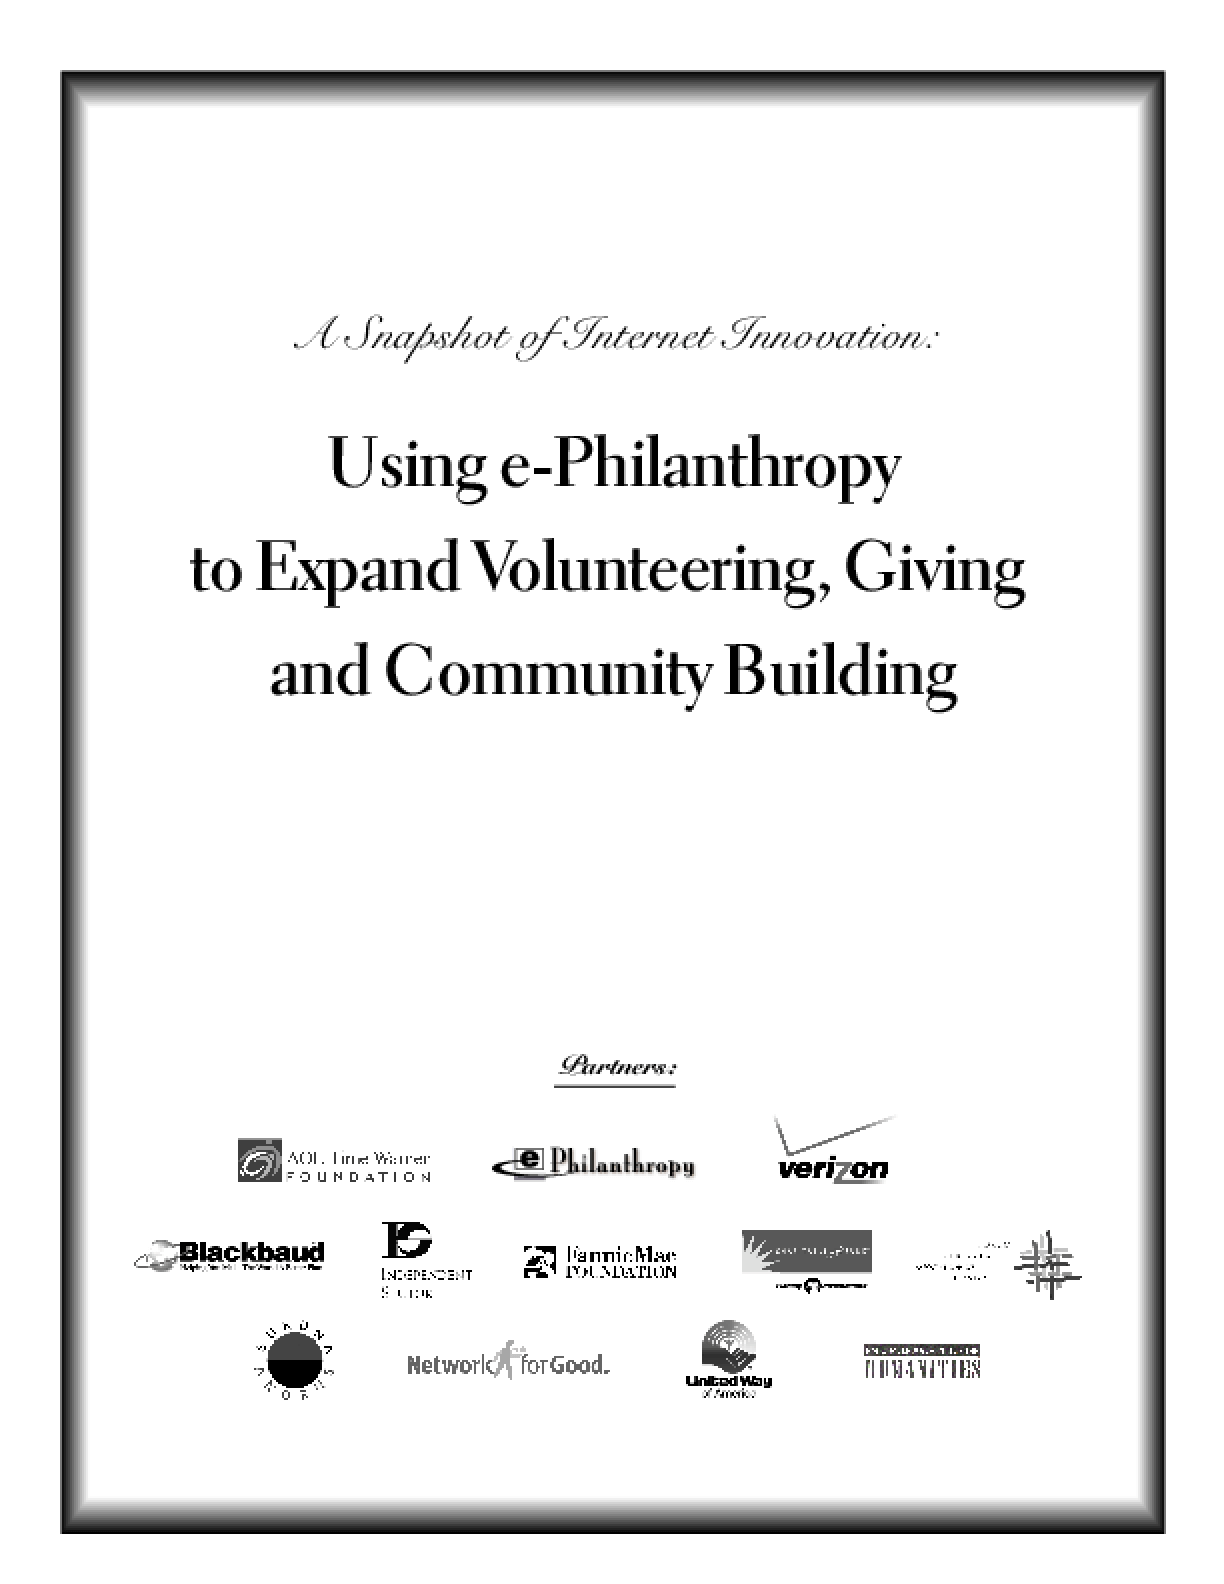 Snapshot of Internet Innovation: Using e-Philanthropy to Expand Volunteering, Giving and Community Building